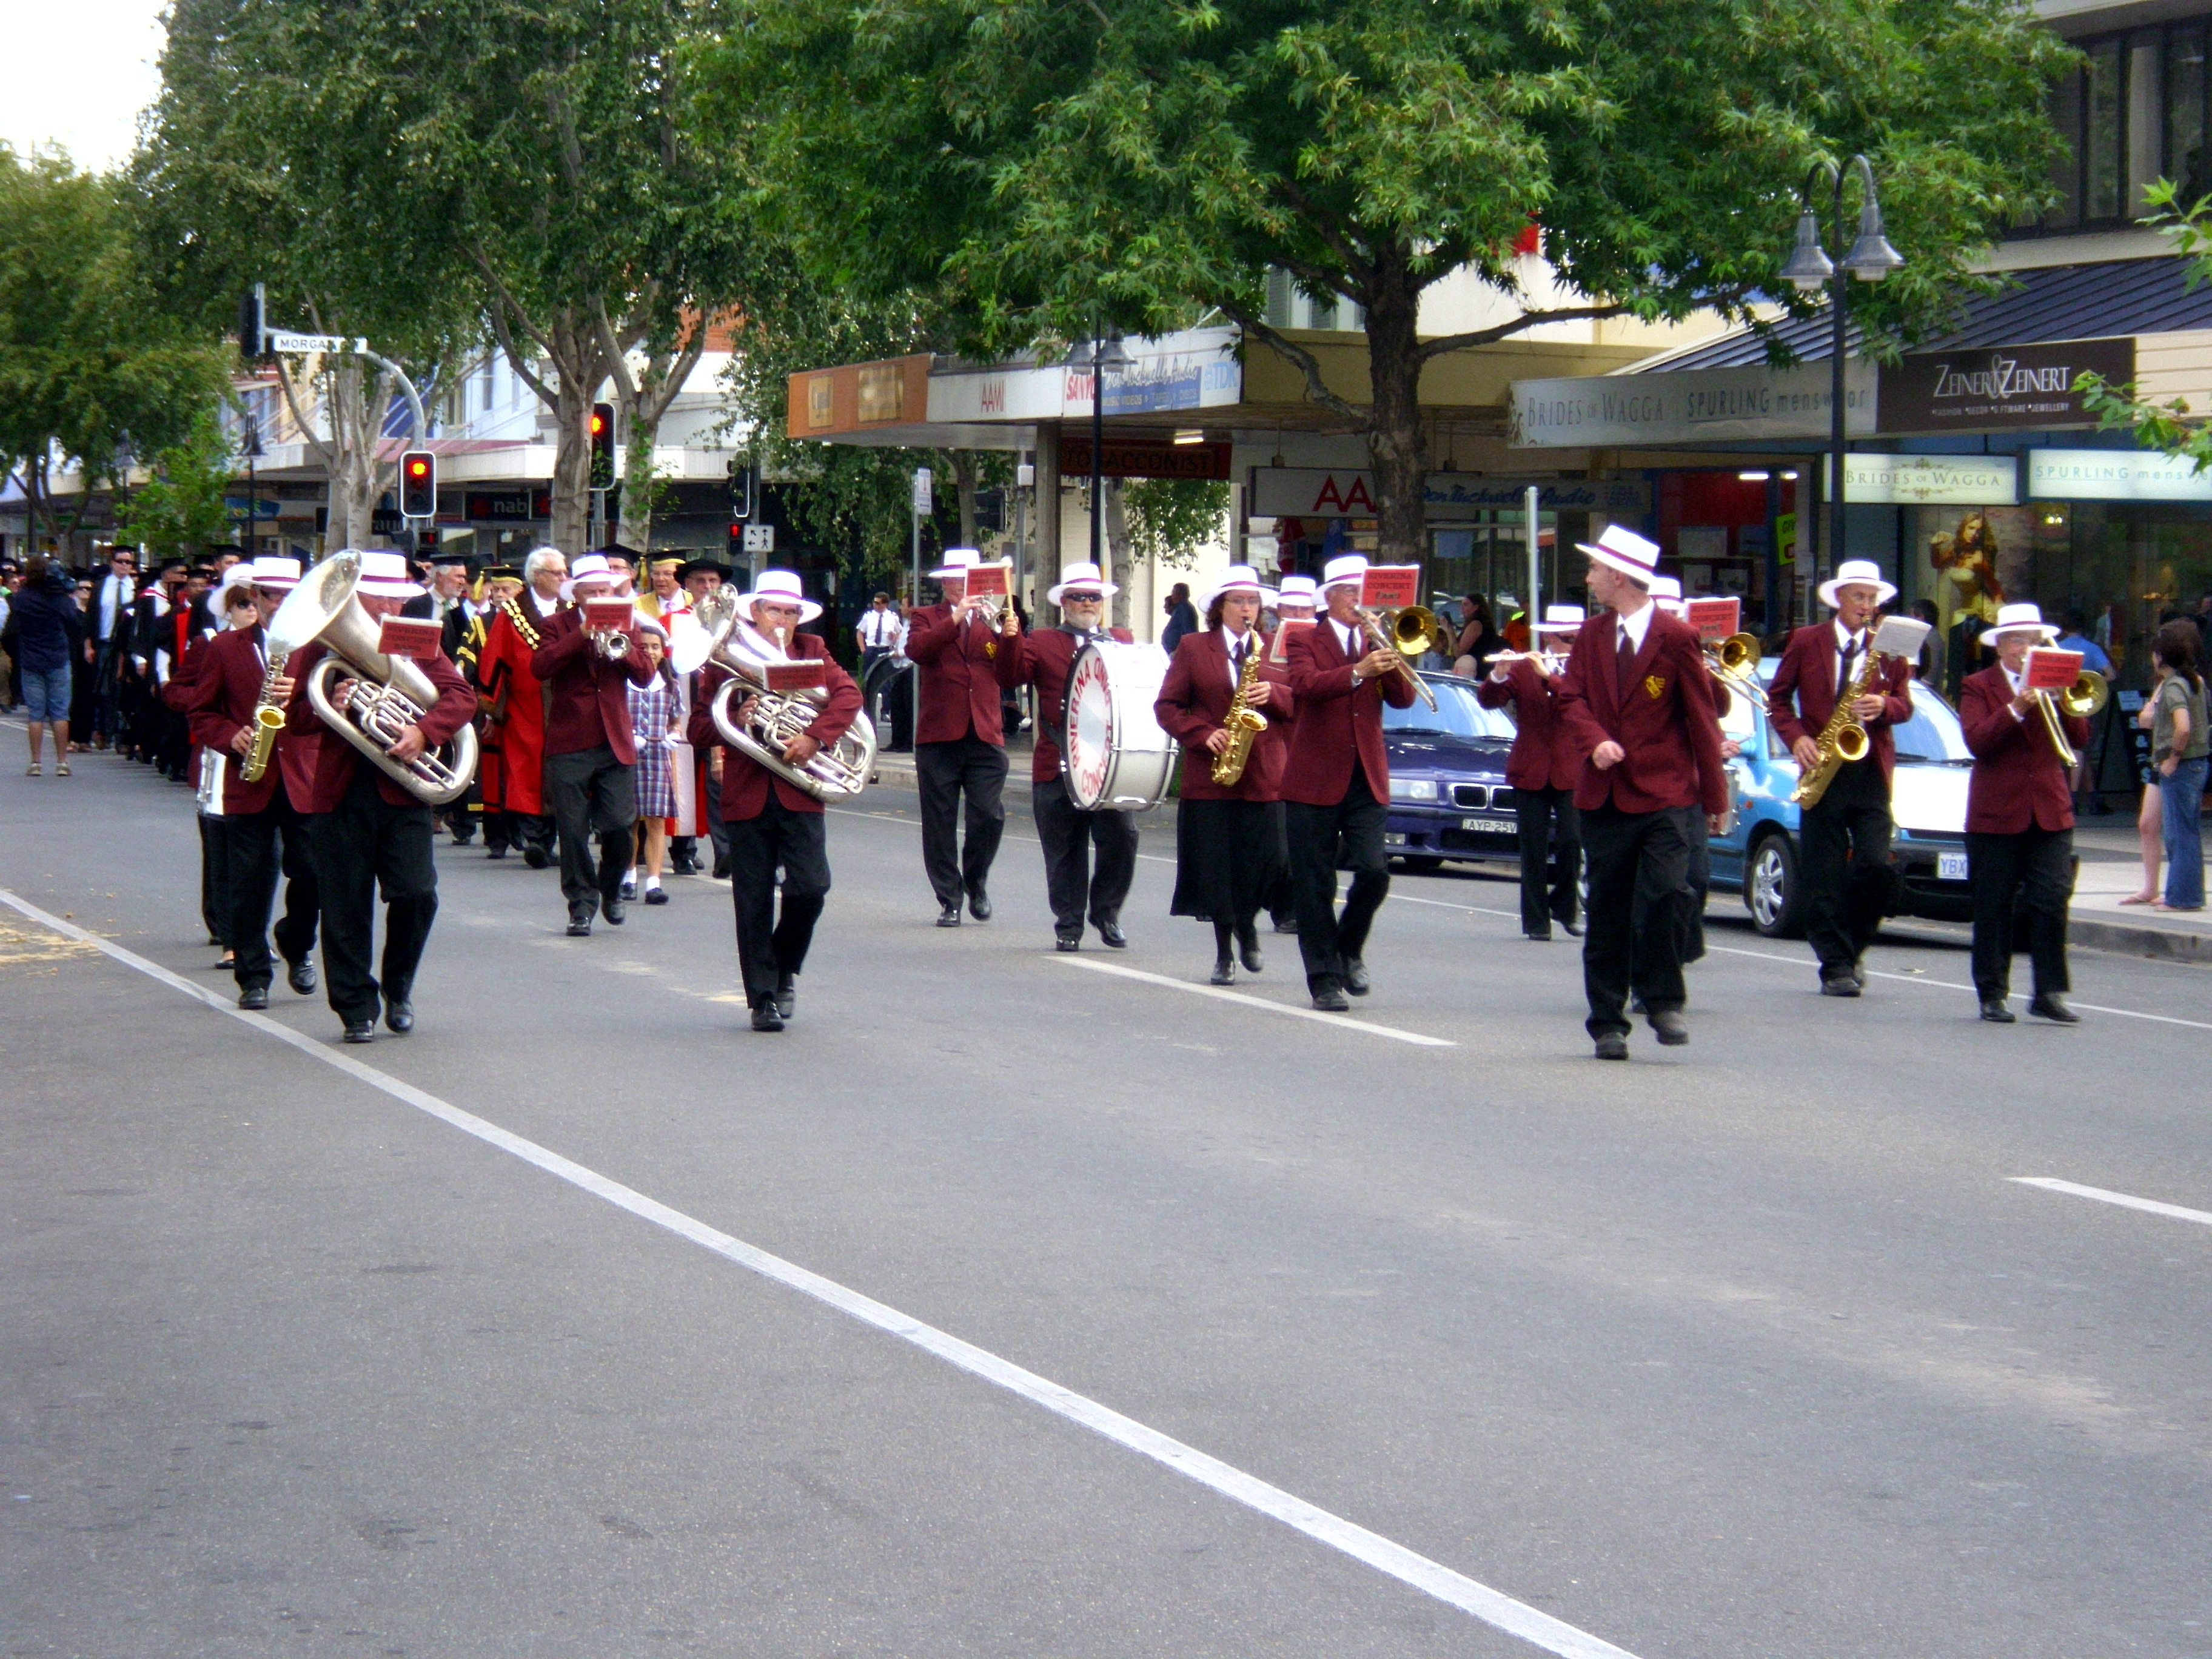 File:Charles Sturt University Town and Gown academic procession down ...